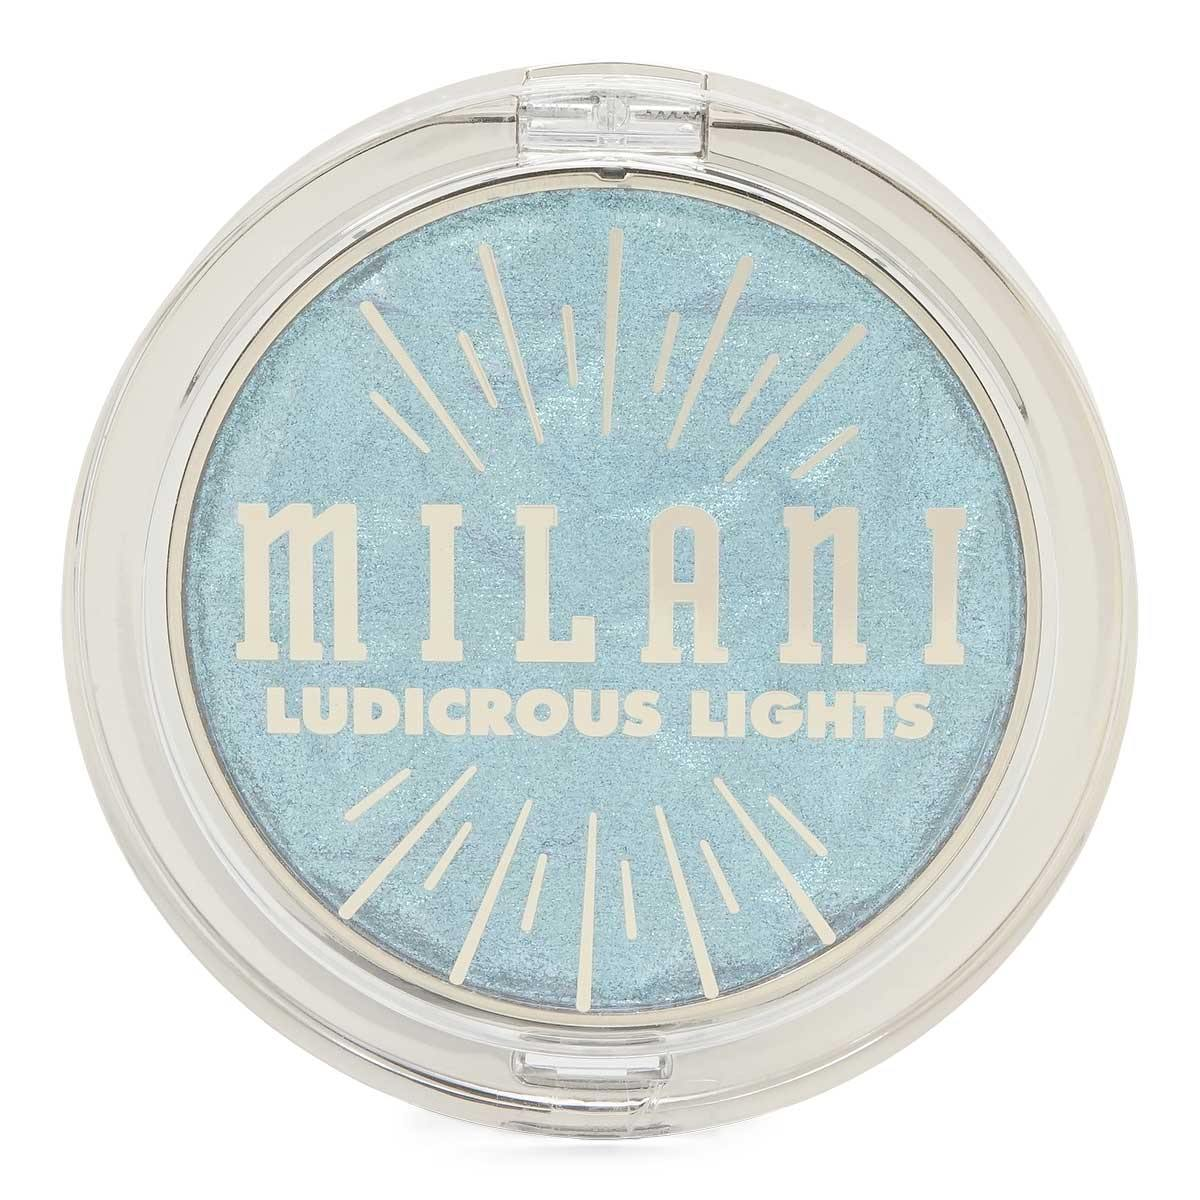 MILANI LUDICROUS LIGHTS CHROME HIGHLIGHTER - LOLLAPA-BLUE-ZA (24/cs)